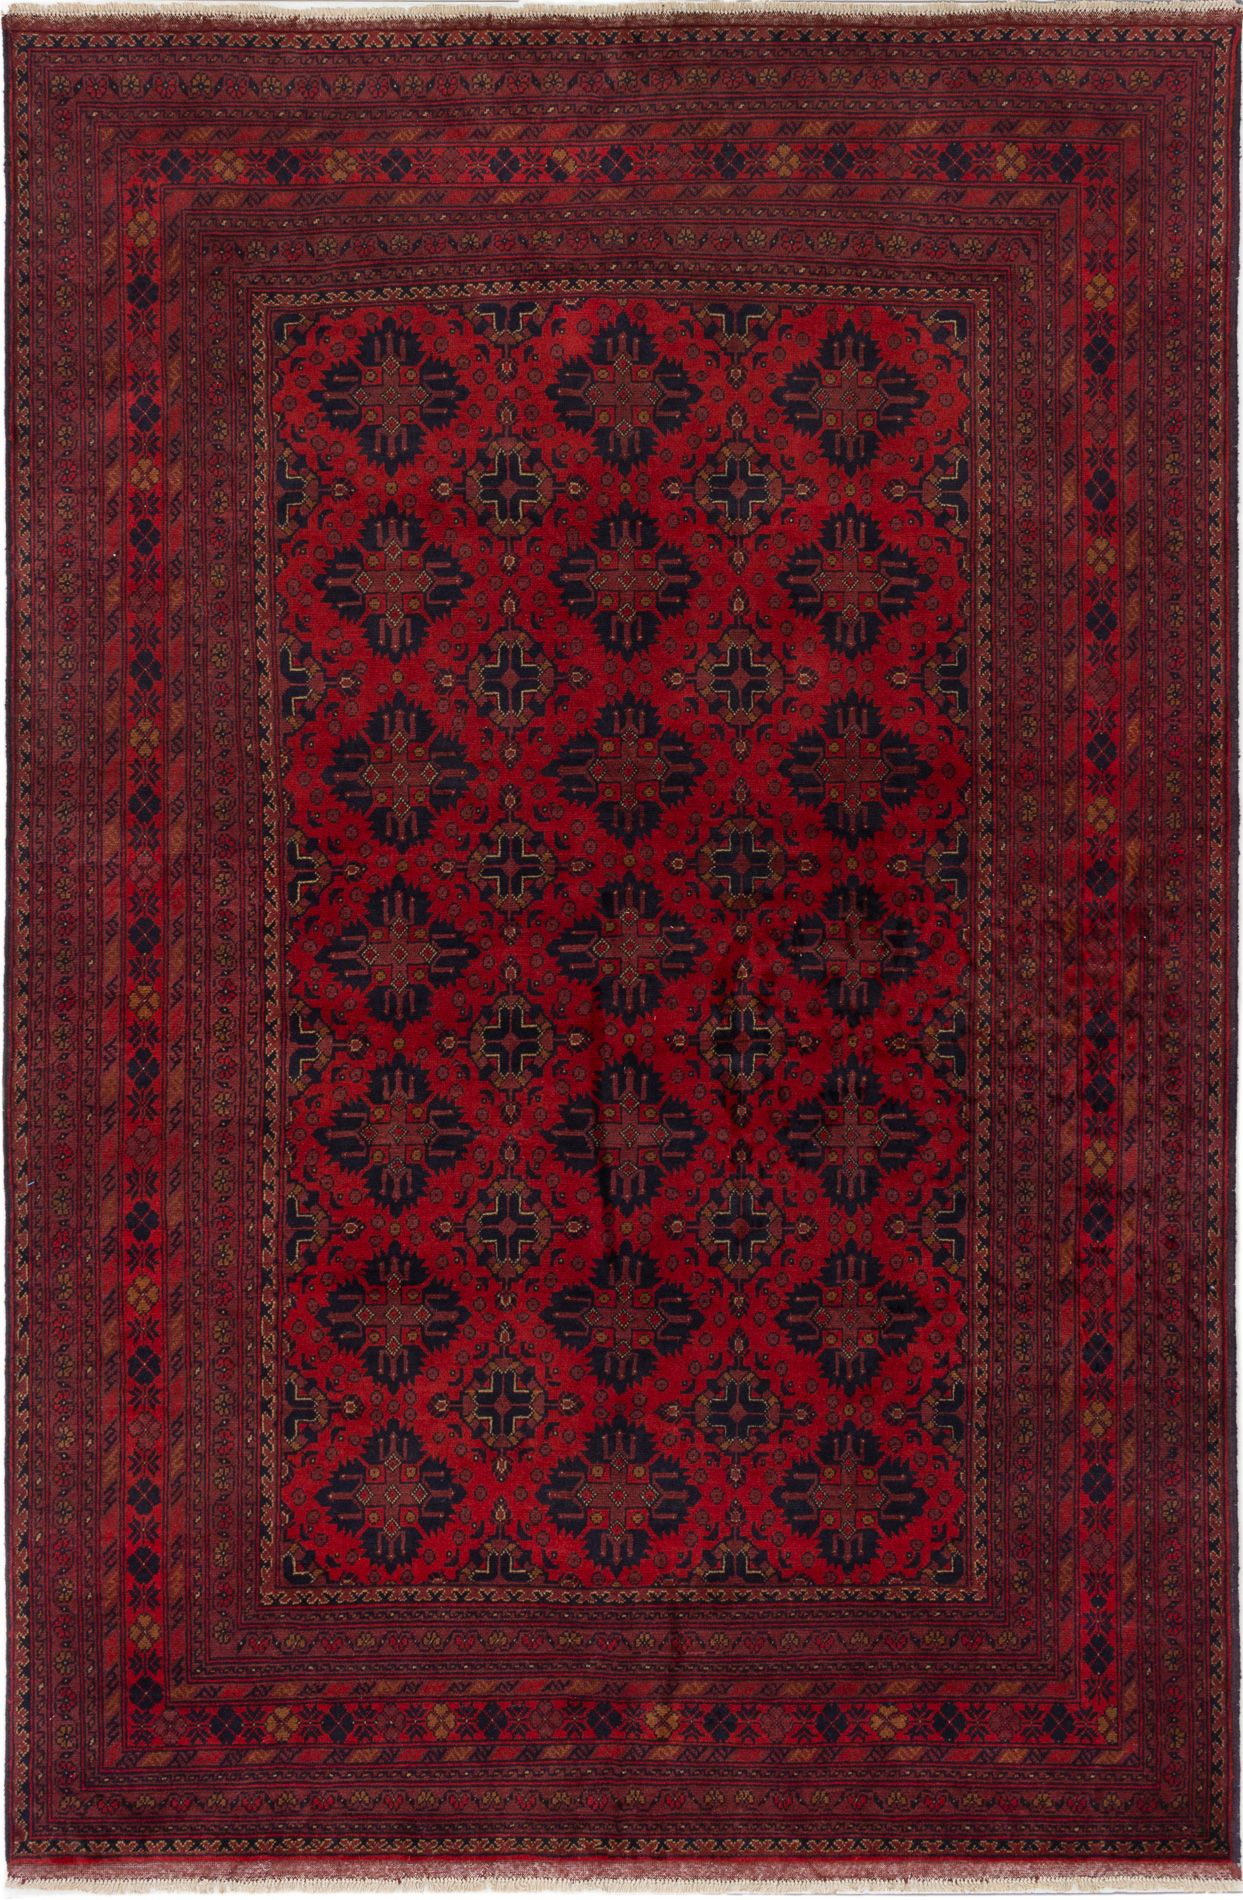 """Hand-knotted Finest Khal Mohammadi Red Wool Rug 6'6"""" x 9'9""""  Size: 6'6"""" x 9'9"""""""